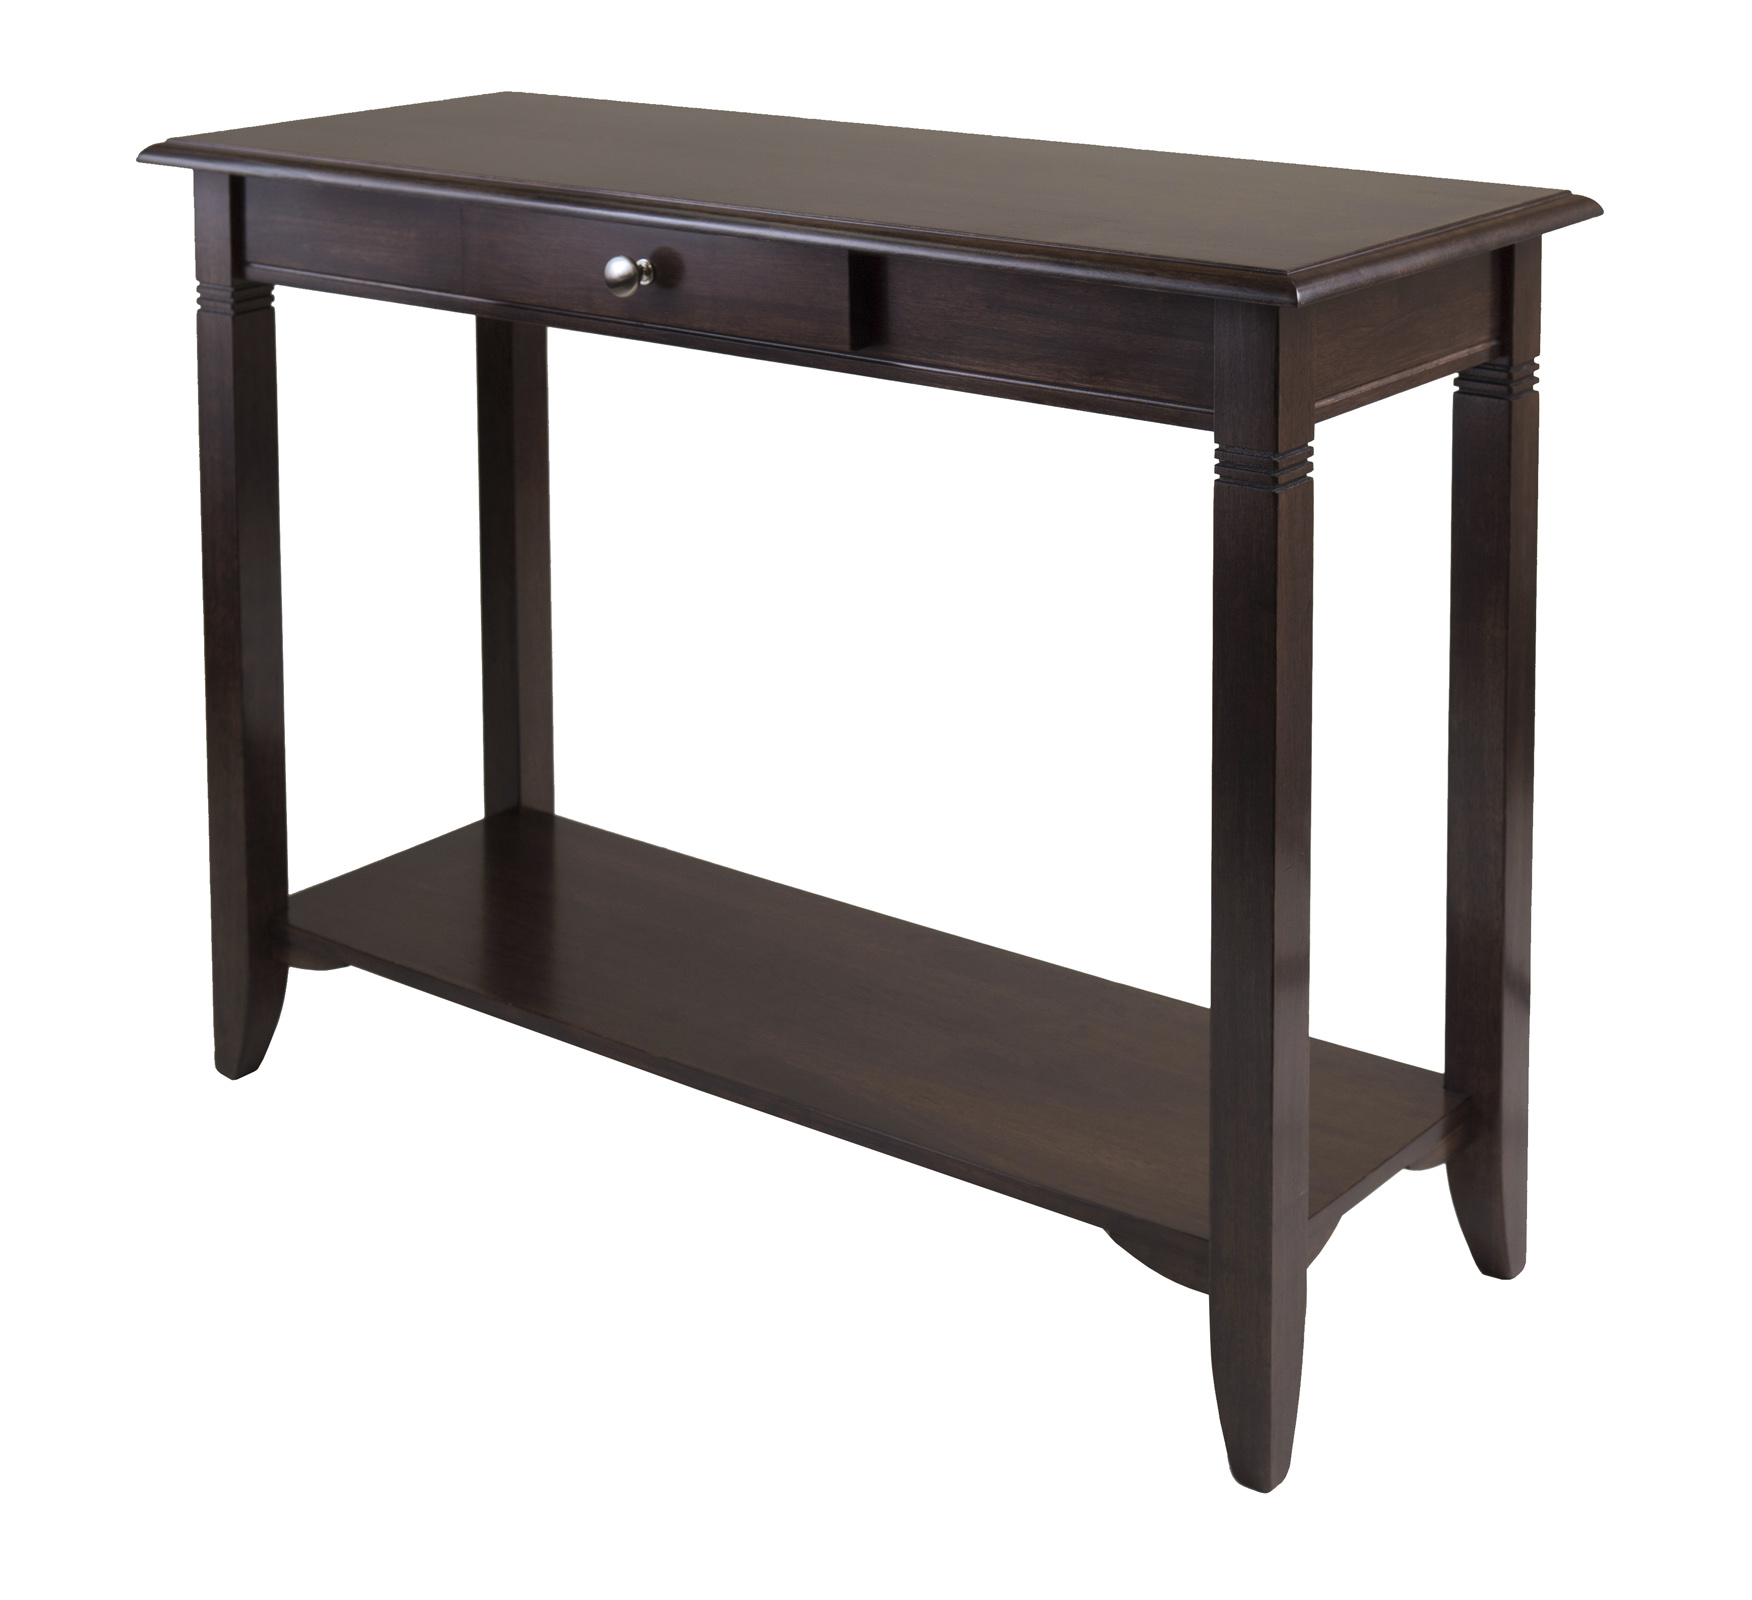 Marvelous photograph of Nolan Console Table with Drawer with #3A302E color and 1752x1600 pixels